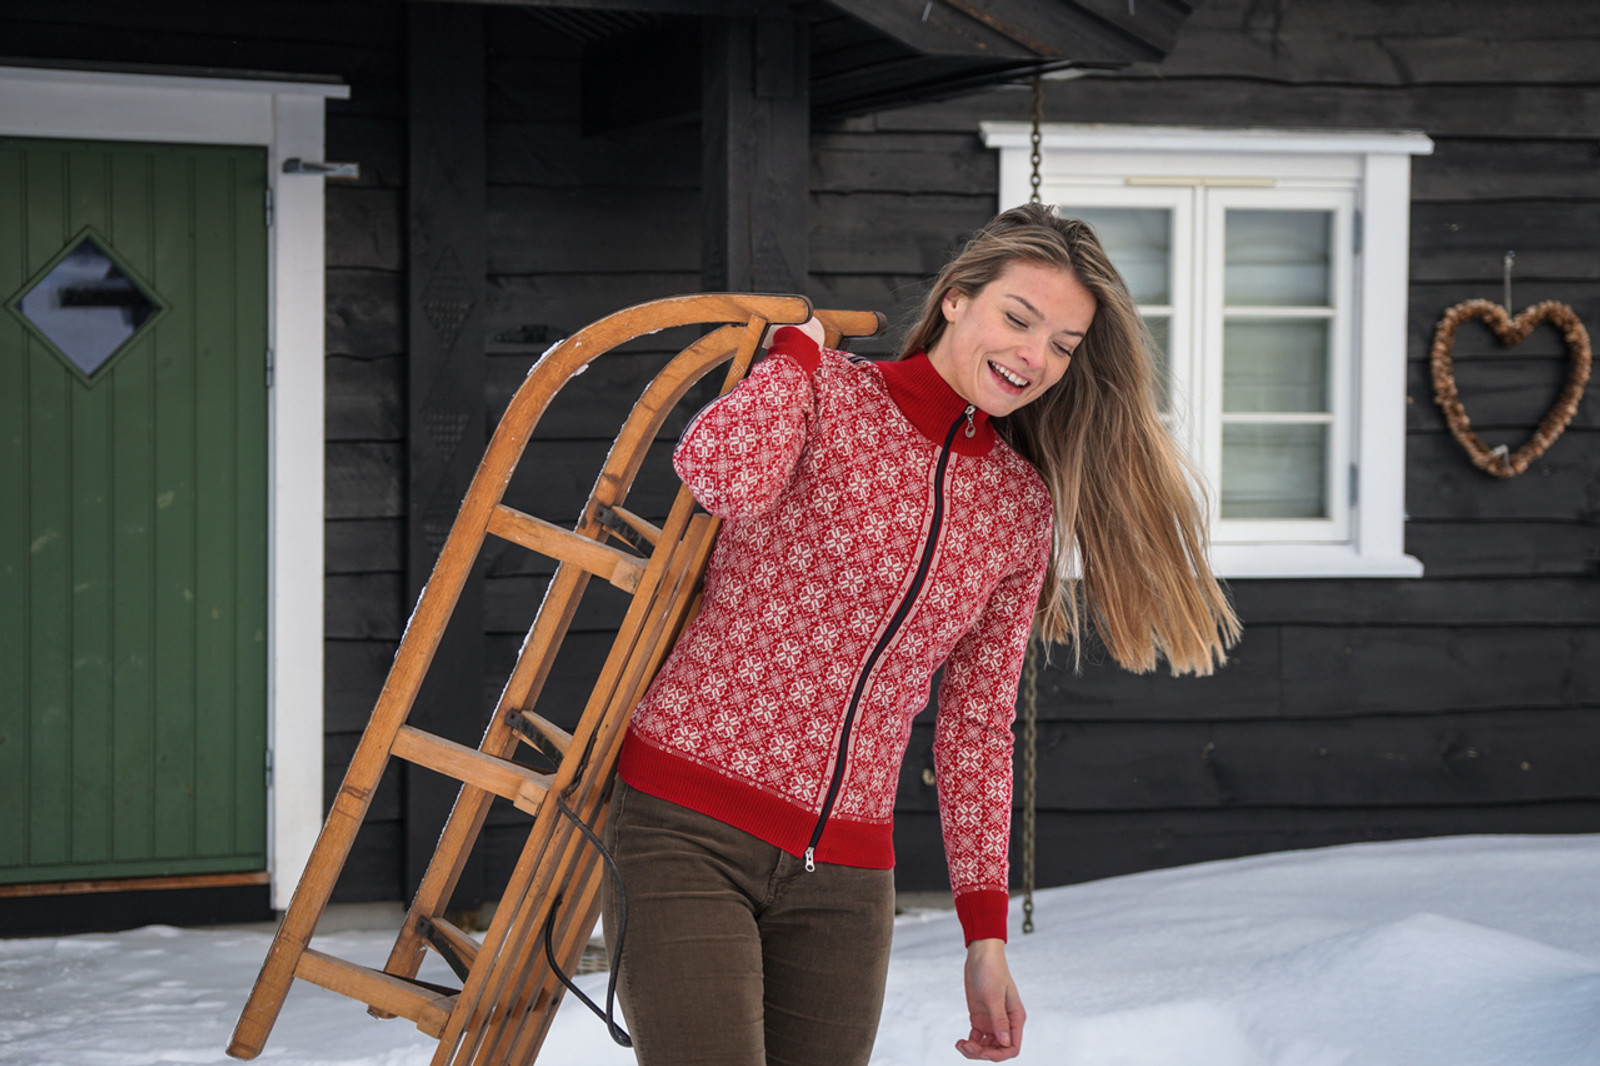 Woman carrying sled and wearing Dale of Norway's Frida cardigan in Raspberry/Off-White/Navy/Metal, 82931-B.